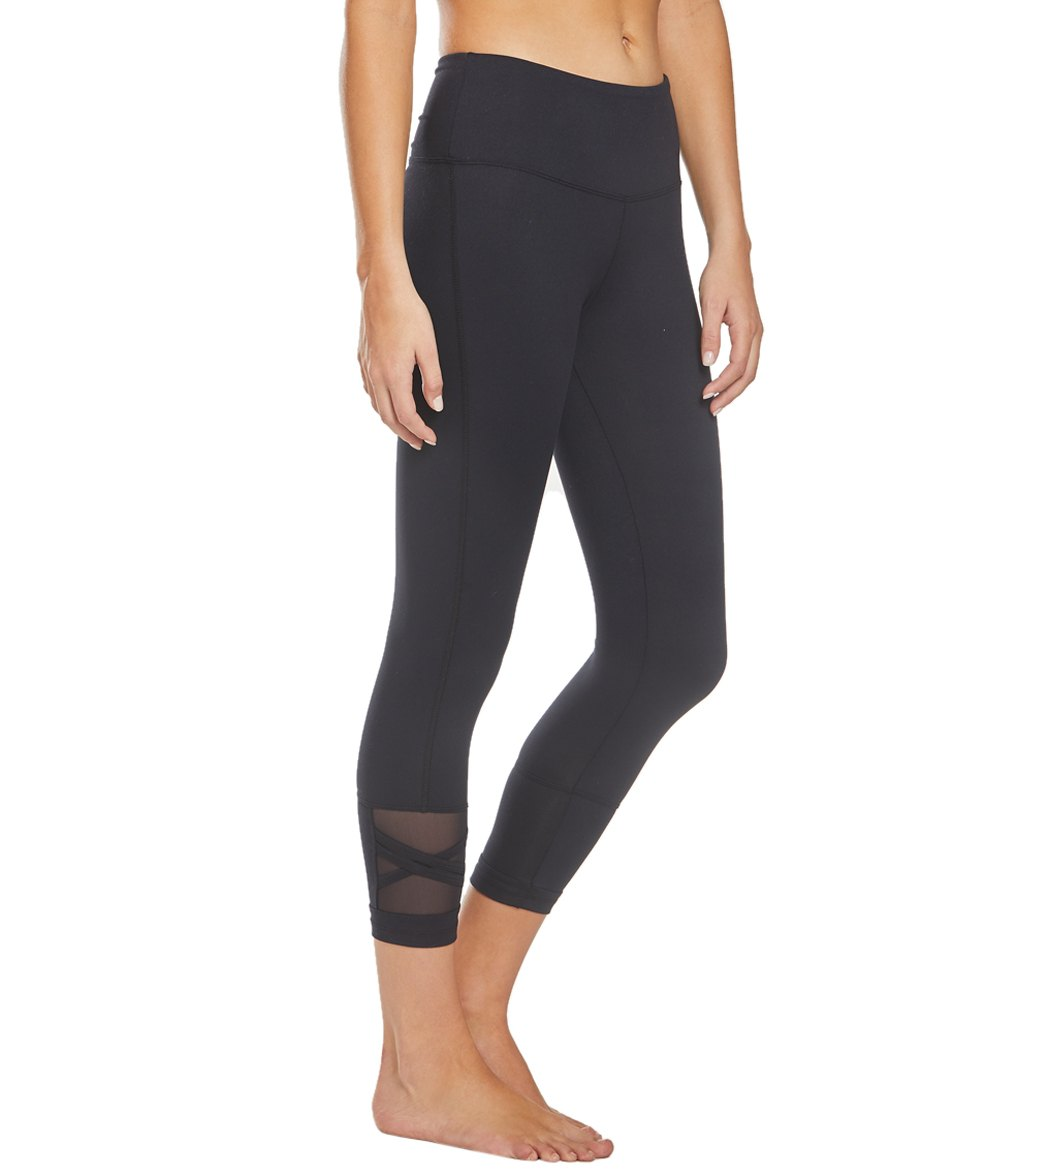 Balance Collection Ellie Yoga Capri Pants - Black Cotton